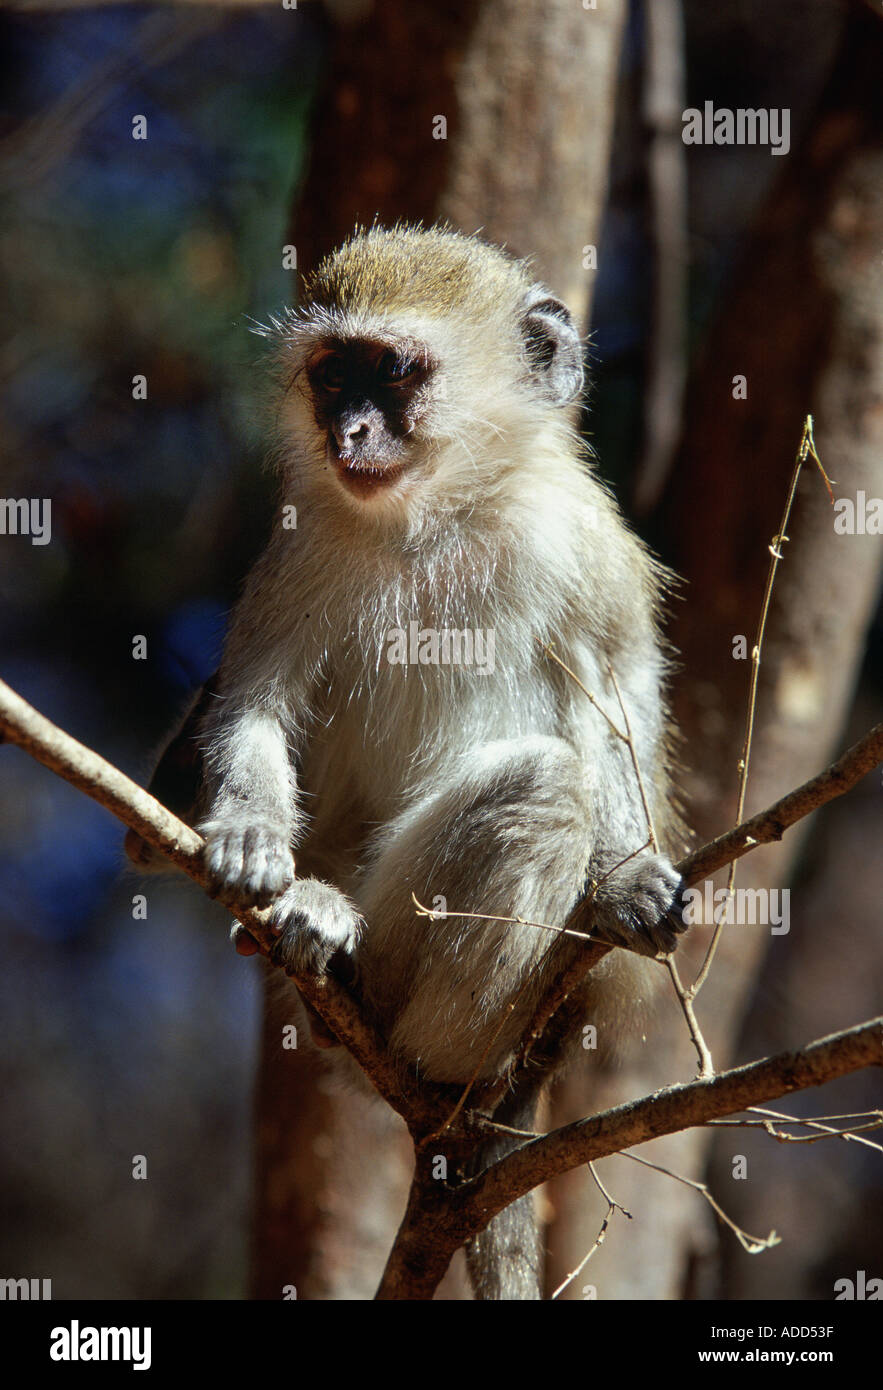 Young vervet monkey perched on tree branch in Zimbabwe Africa - Stock Image